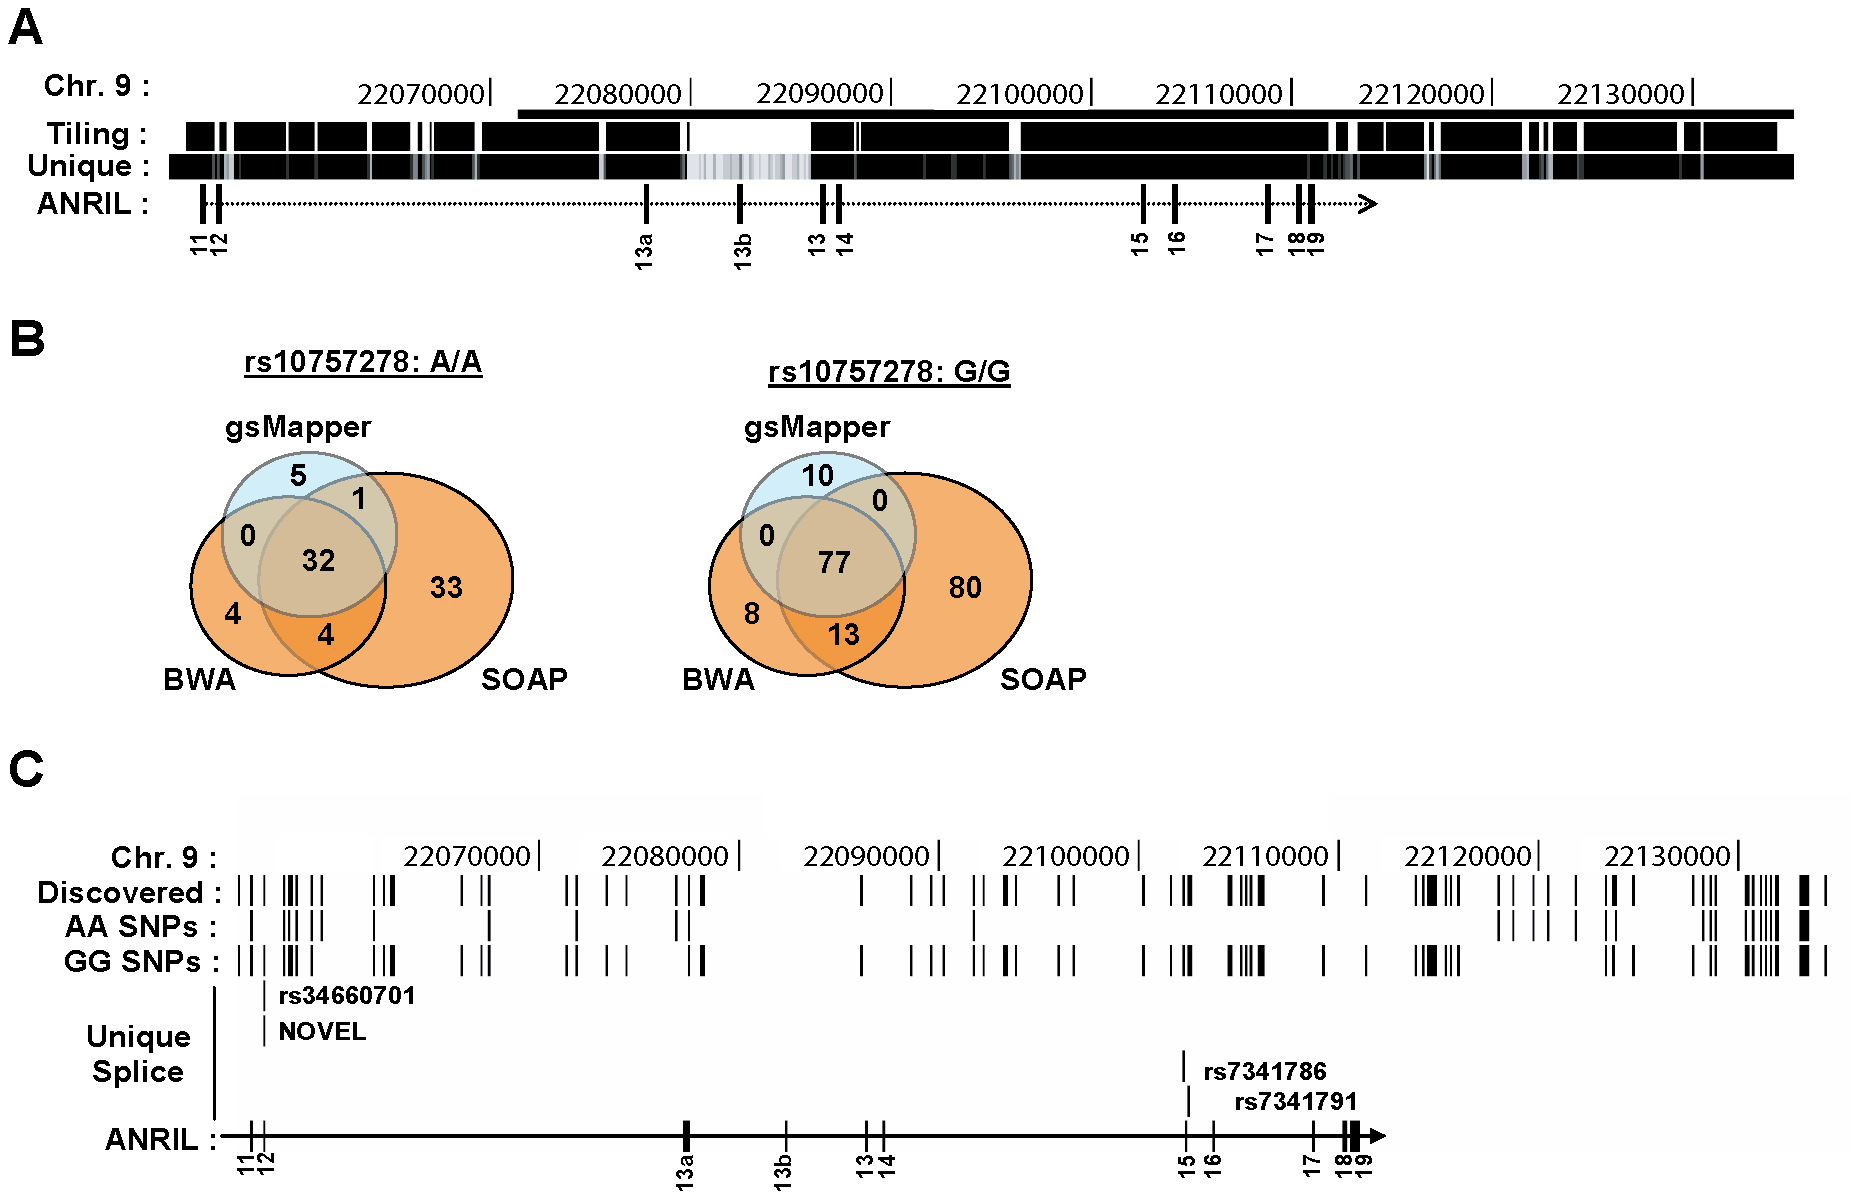 Deep sequencing of 9p21 in pools of rs10757278 homozygotes.